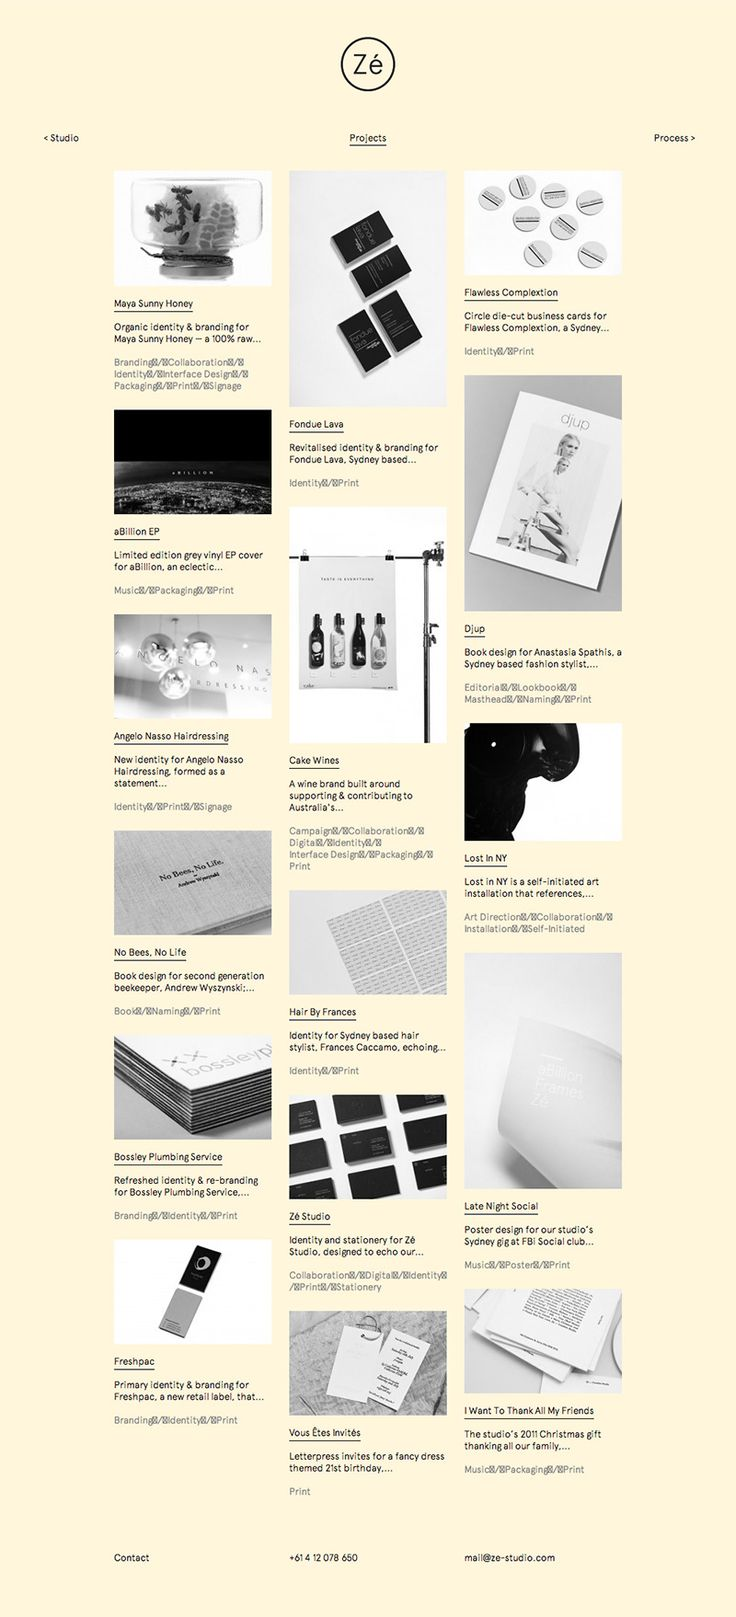 Zé Studio  Very doable solution for cargo collective. I like the clear titles and introductory descriptions underneath the thumbnails, might be nice if you have great descriptions of your work that provides insight into each project.